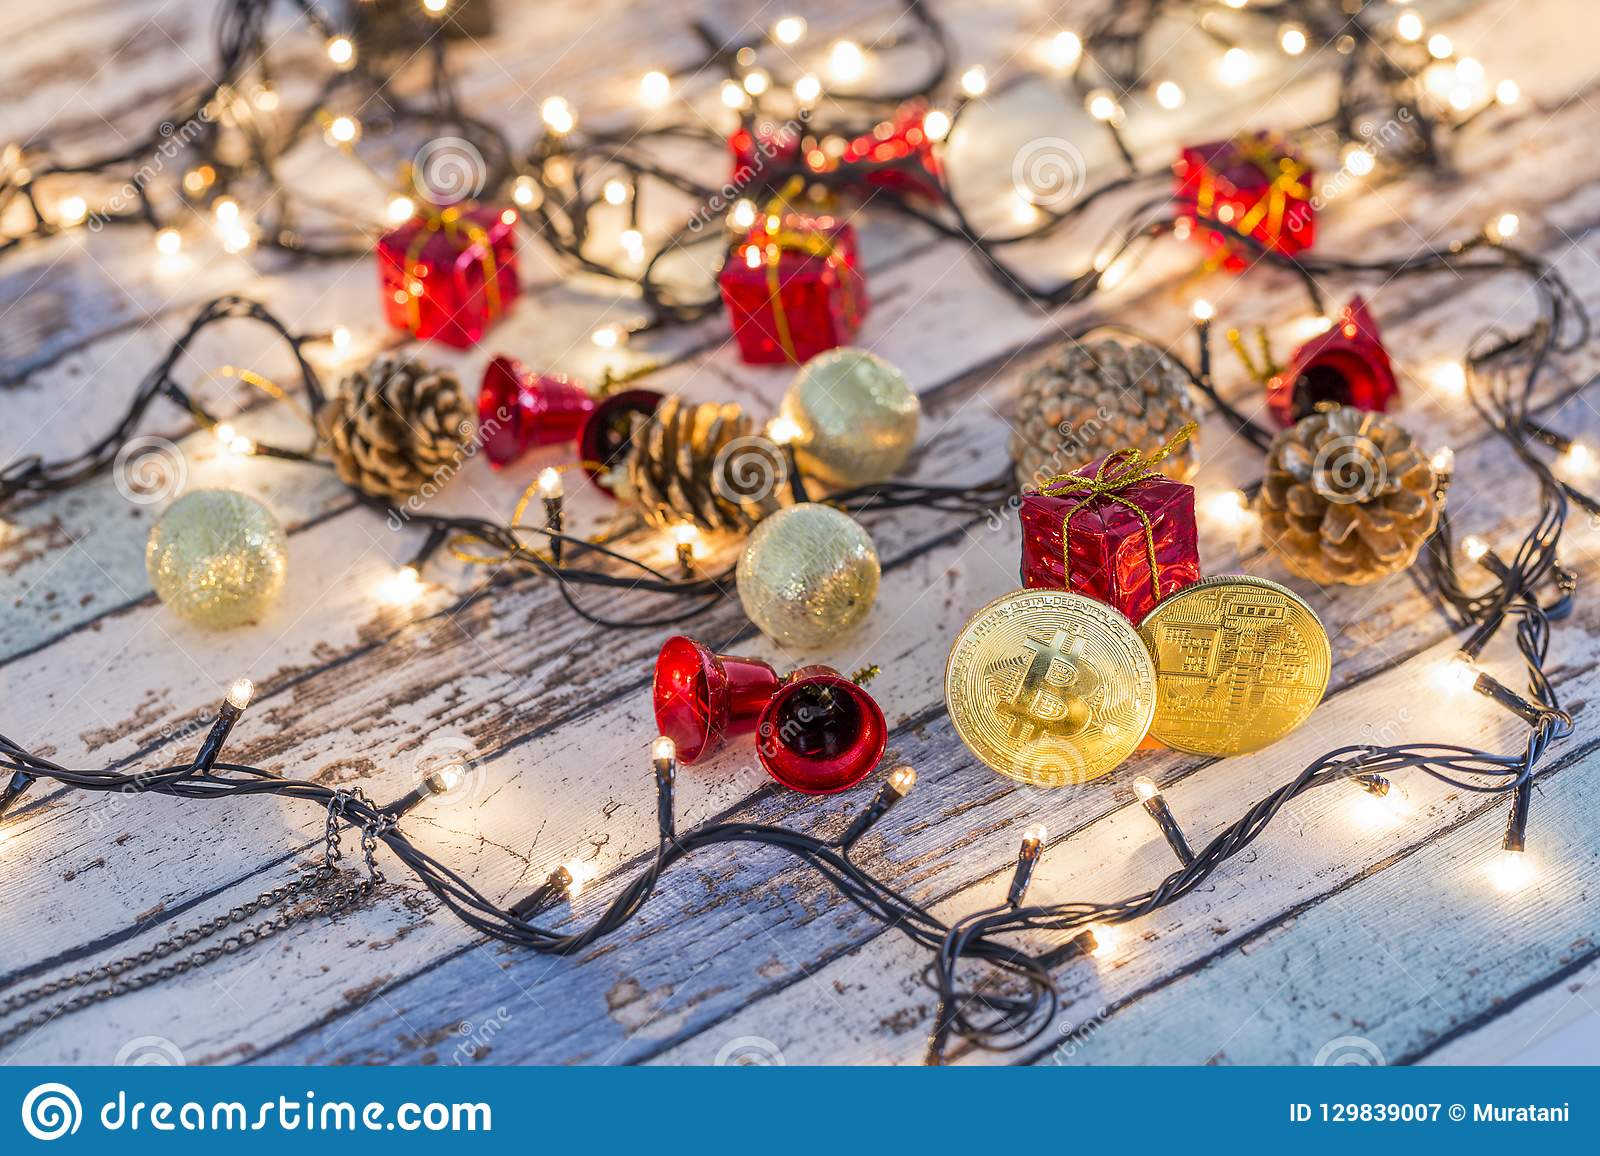 Golden bitcoin and another bitcoin in back with christmas decors